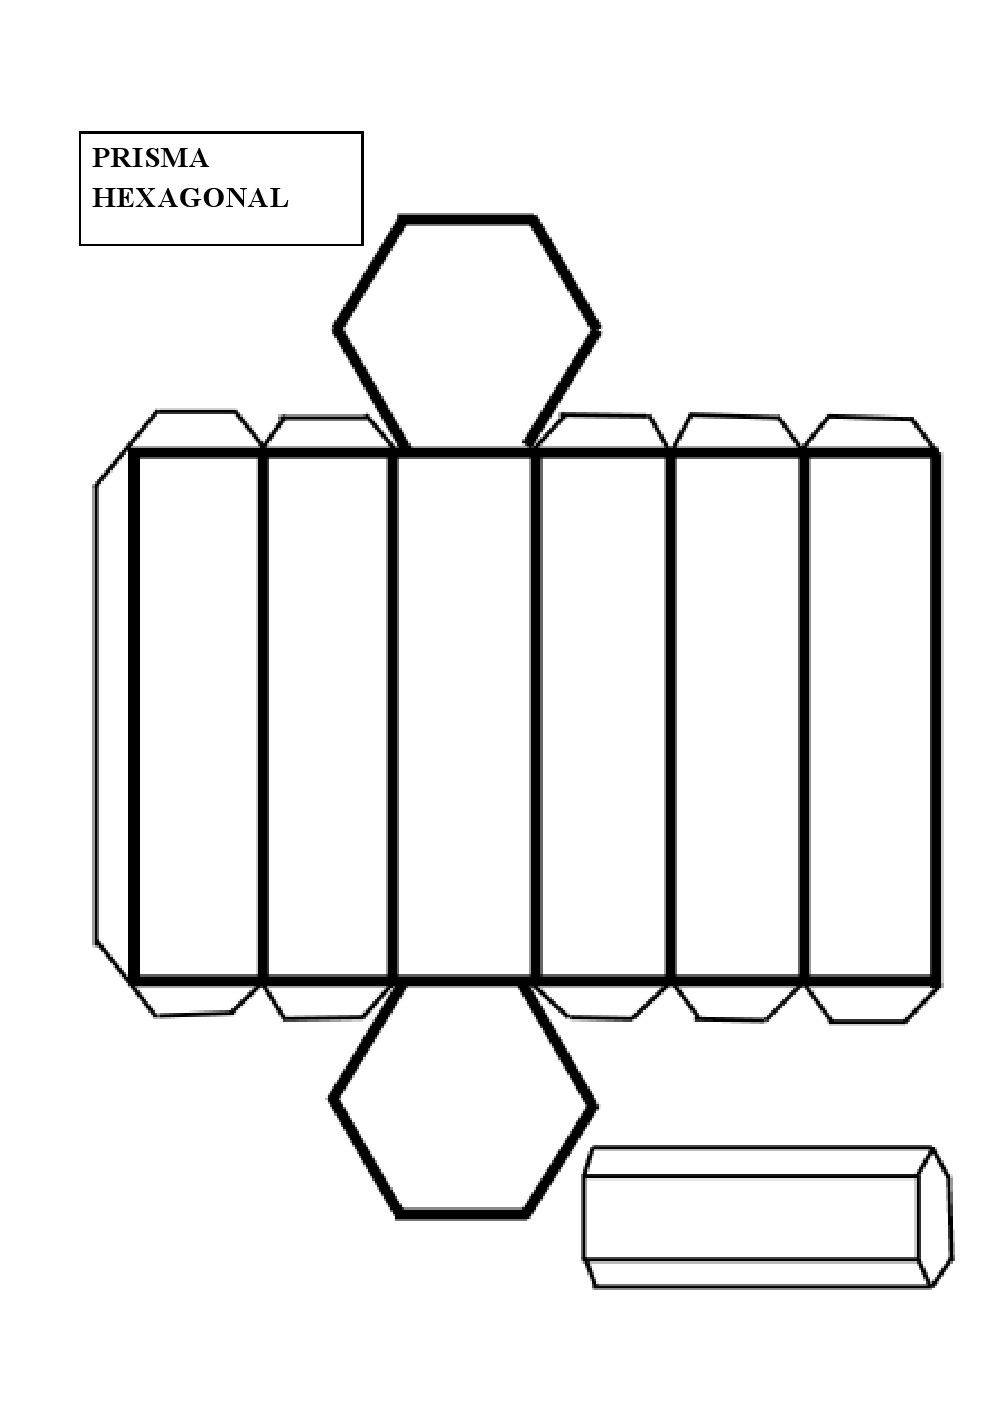 construir un prisma hexagonal คณ ตศาสตร pinterest math